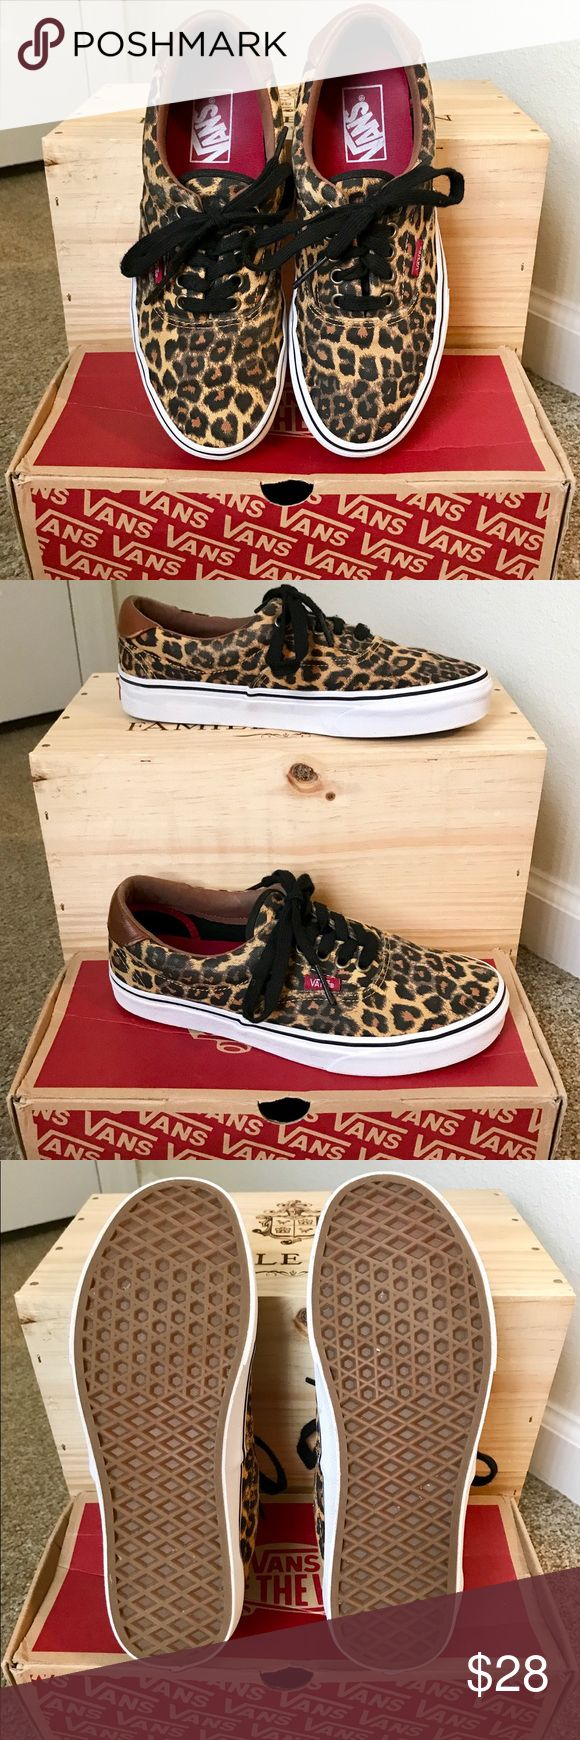 Vans Leopard Print Shoes Gently used, in great condition! Vans Shoes Sneakers